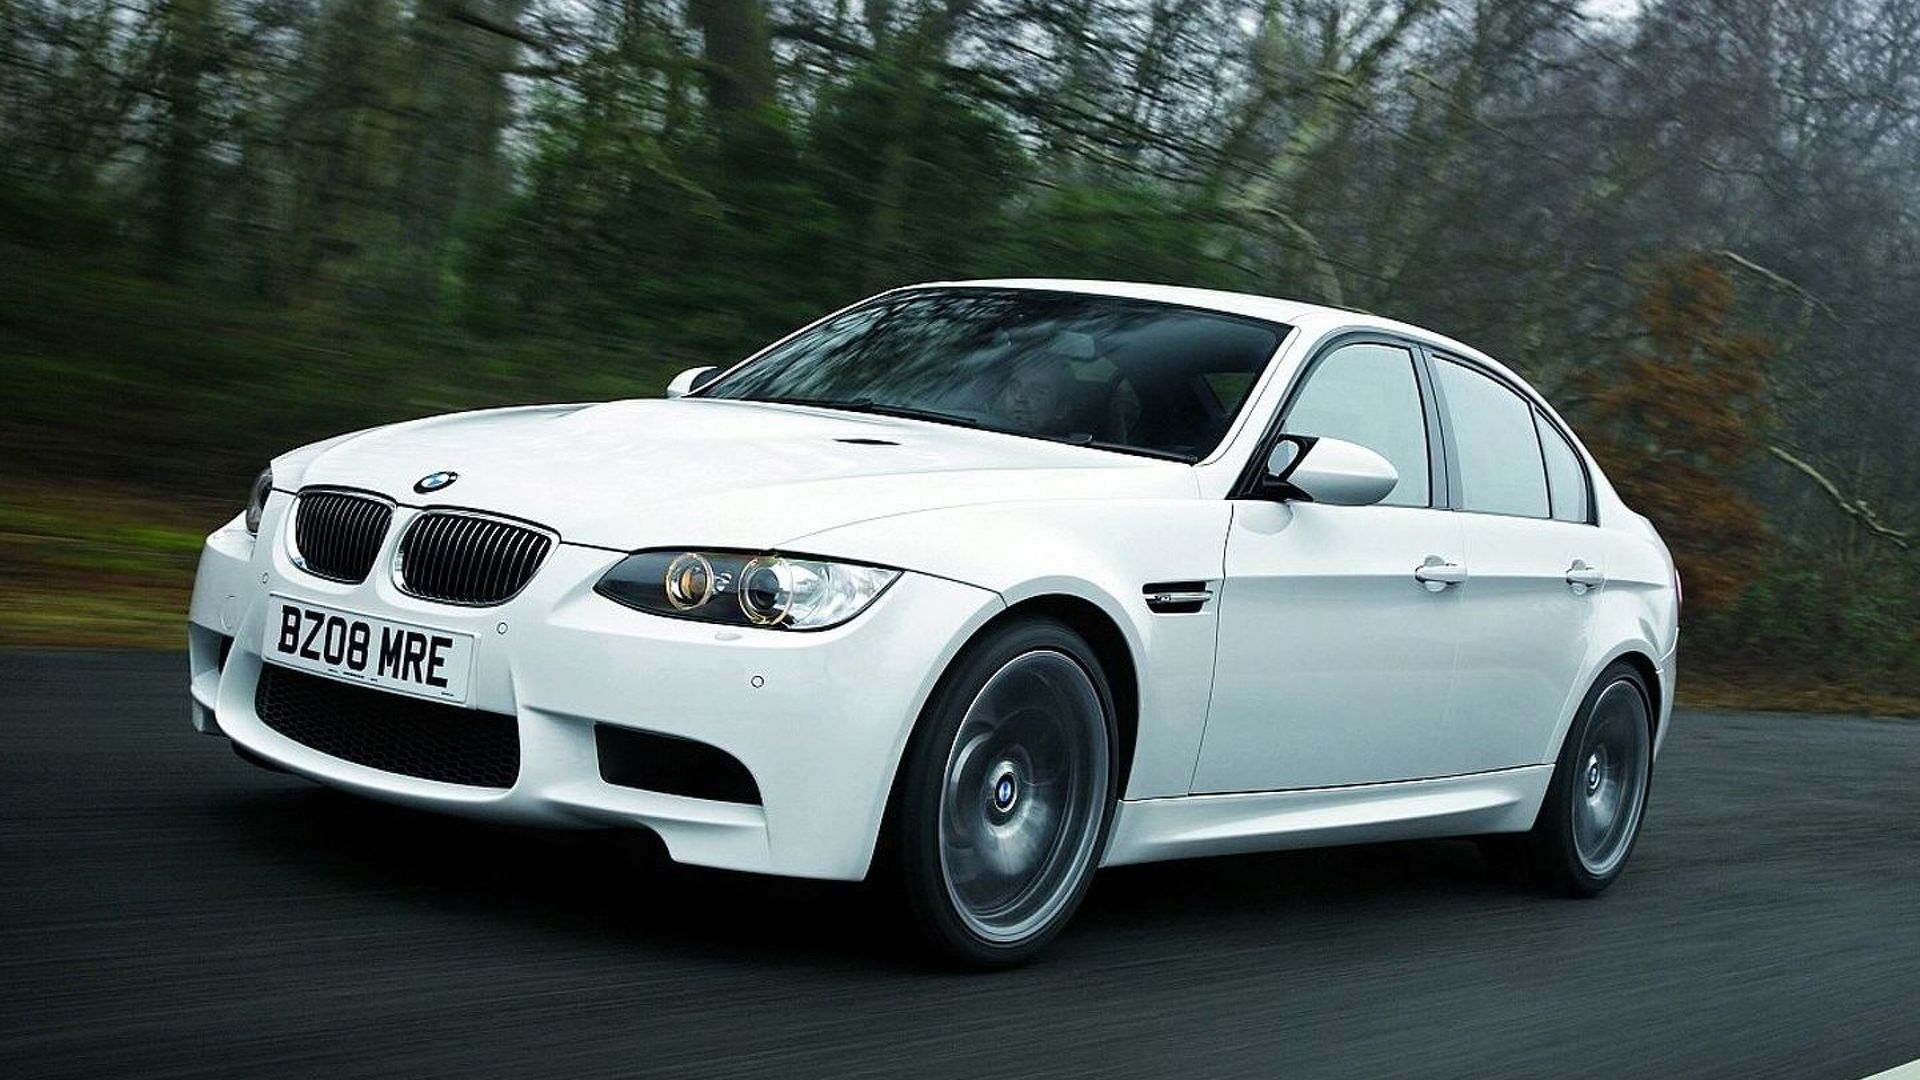 BMW M3 saloon: UK pricing revealed